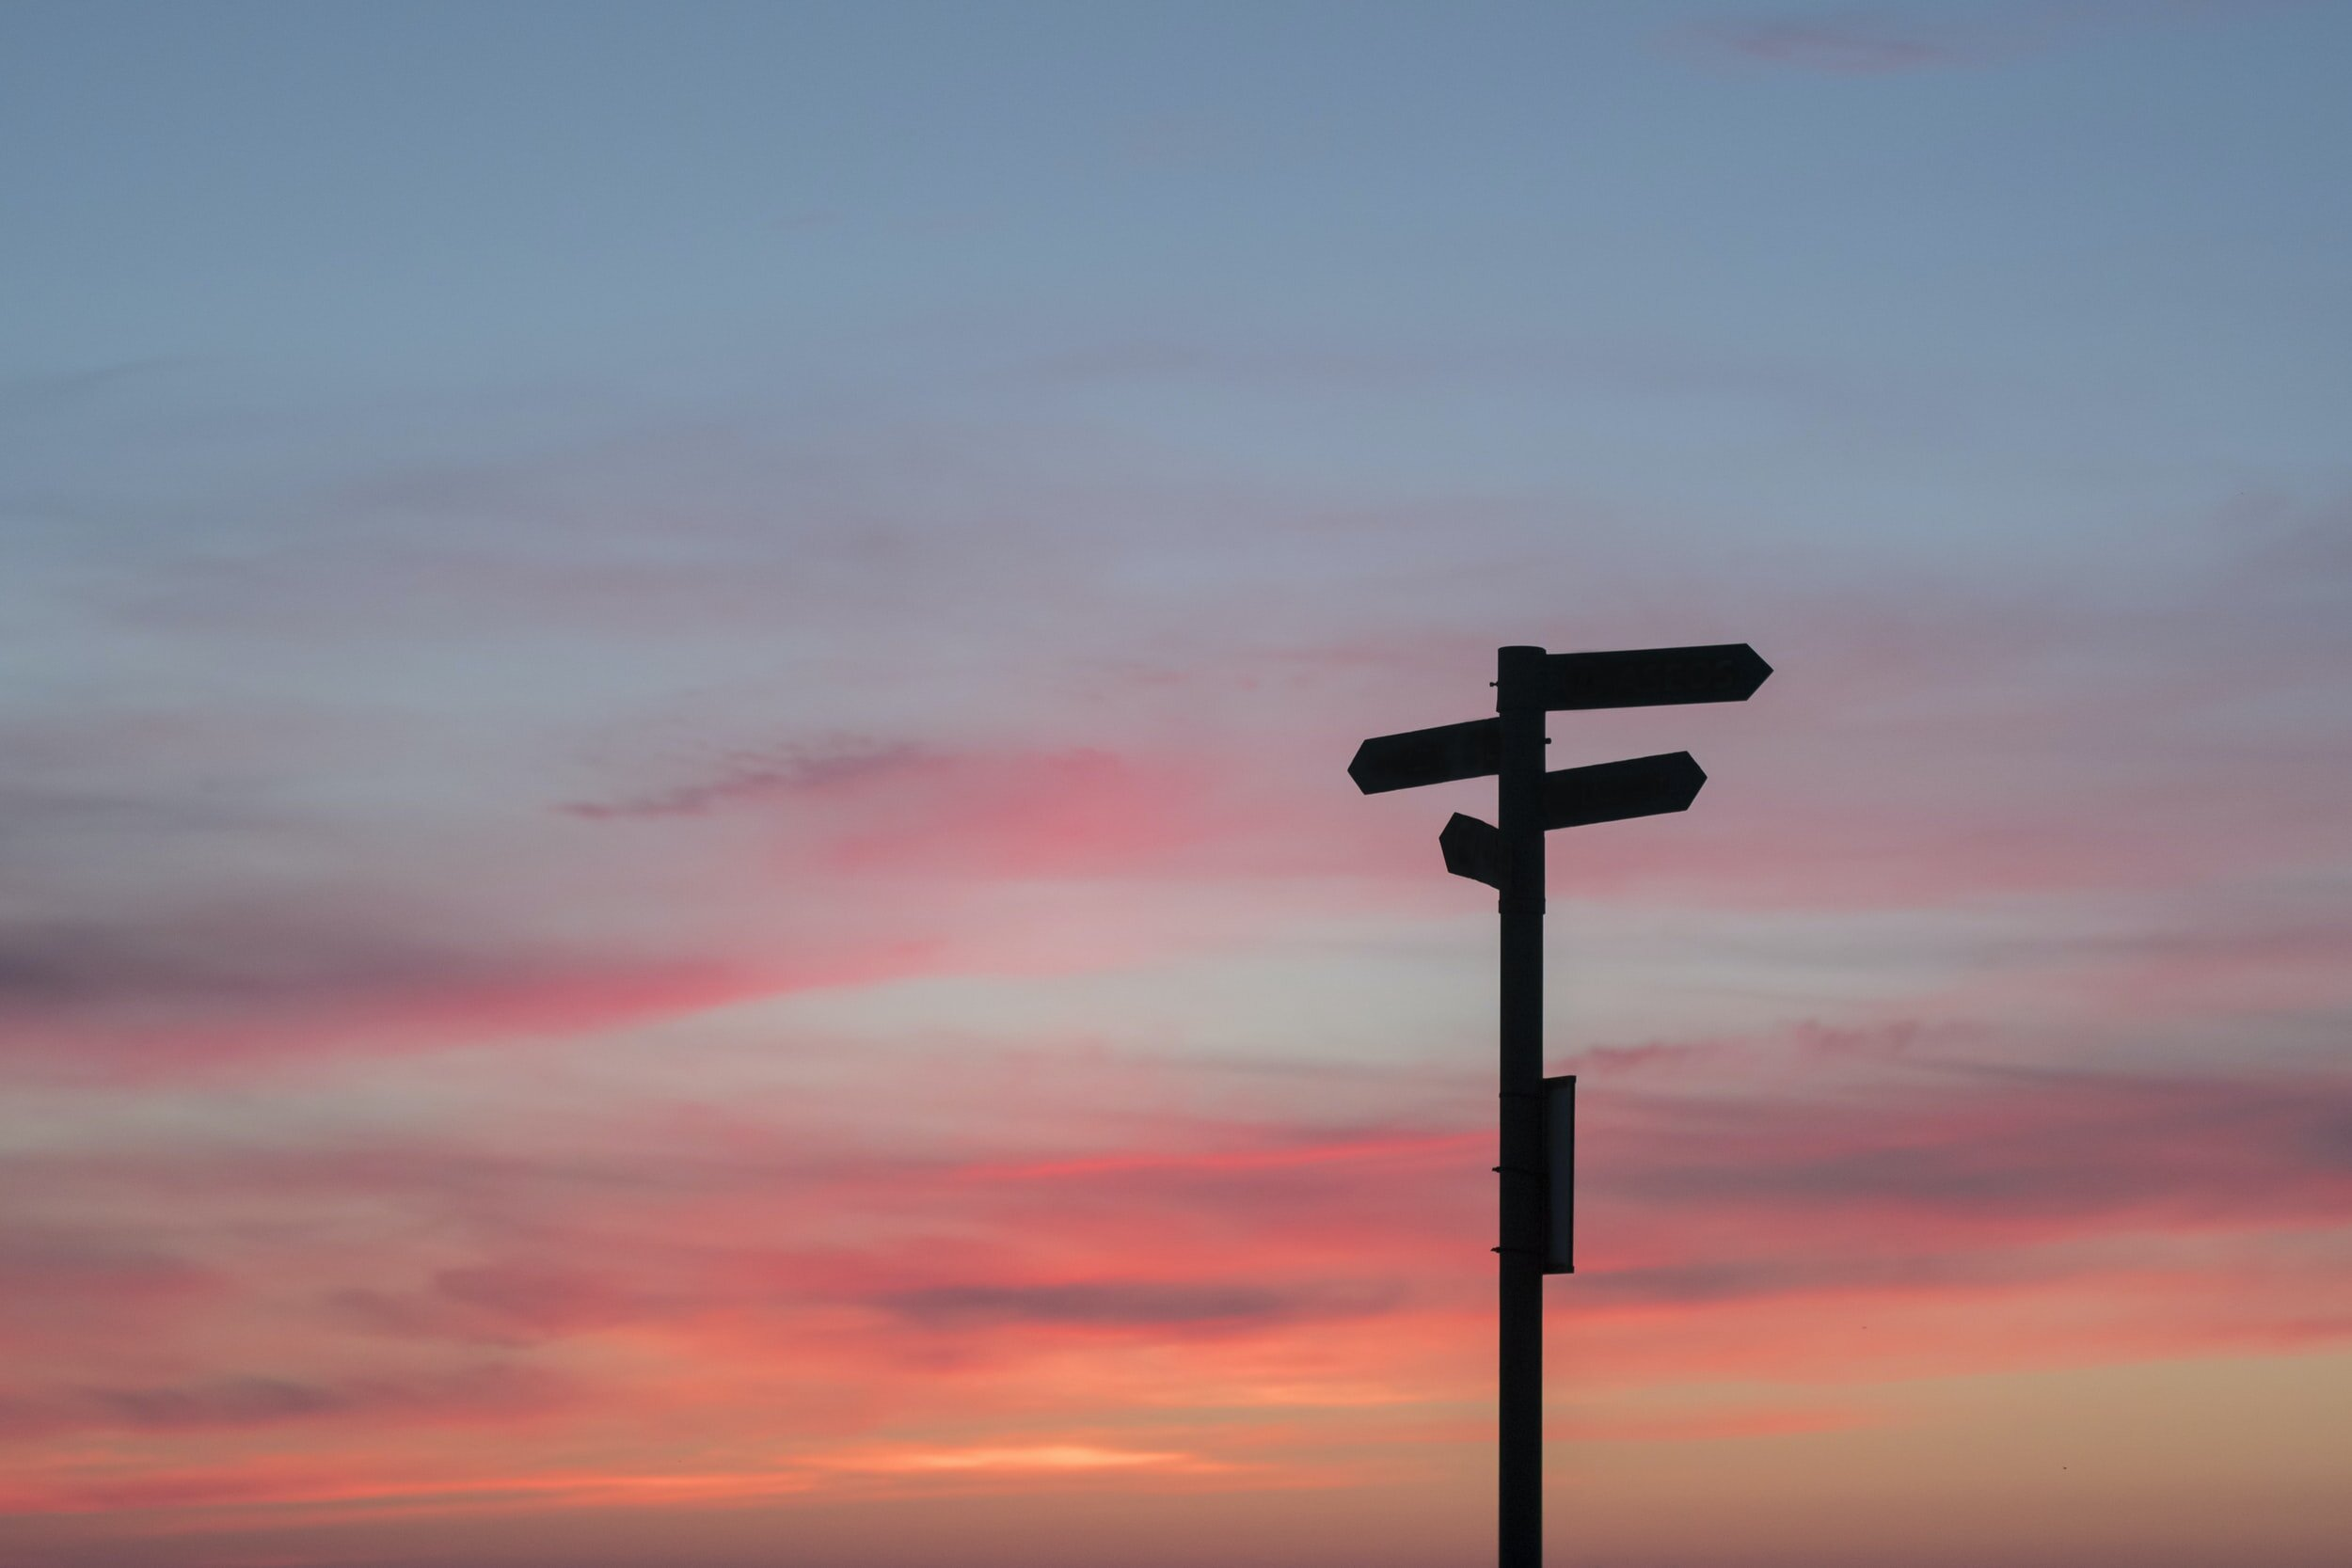 picture of a street sign in front a sunrise